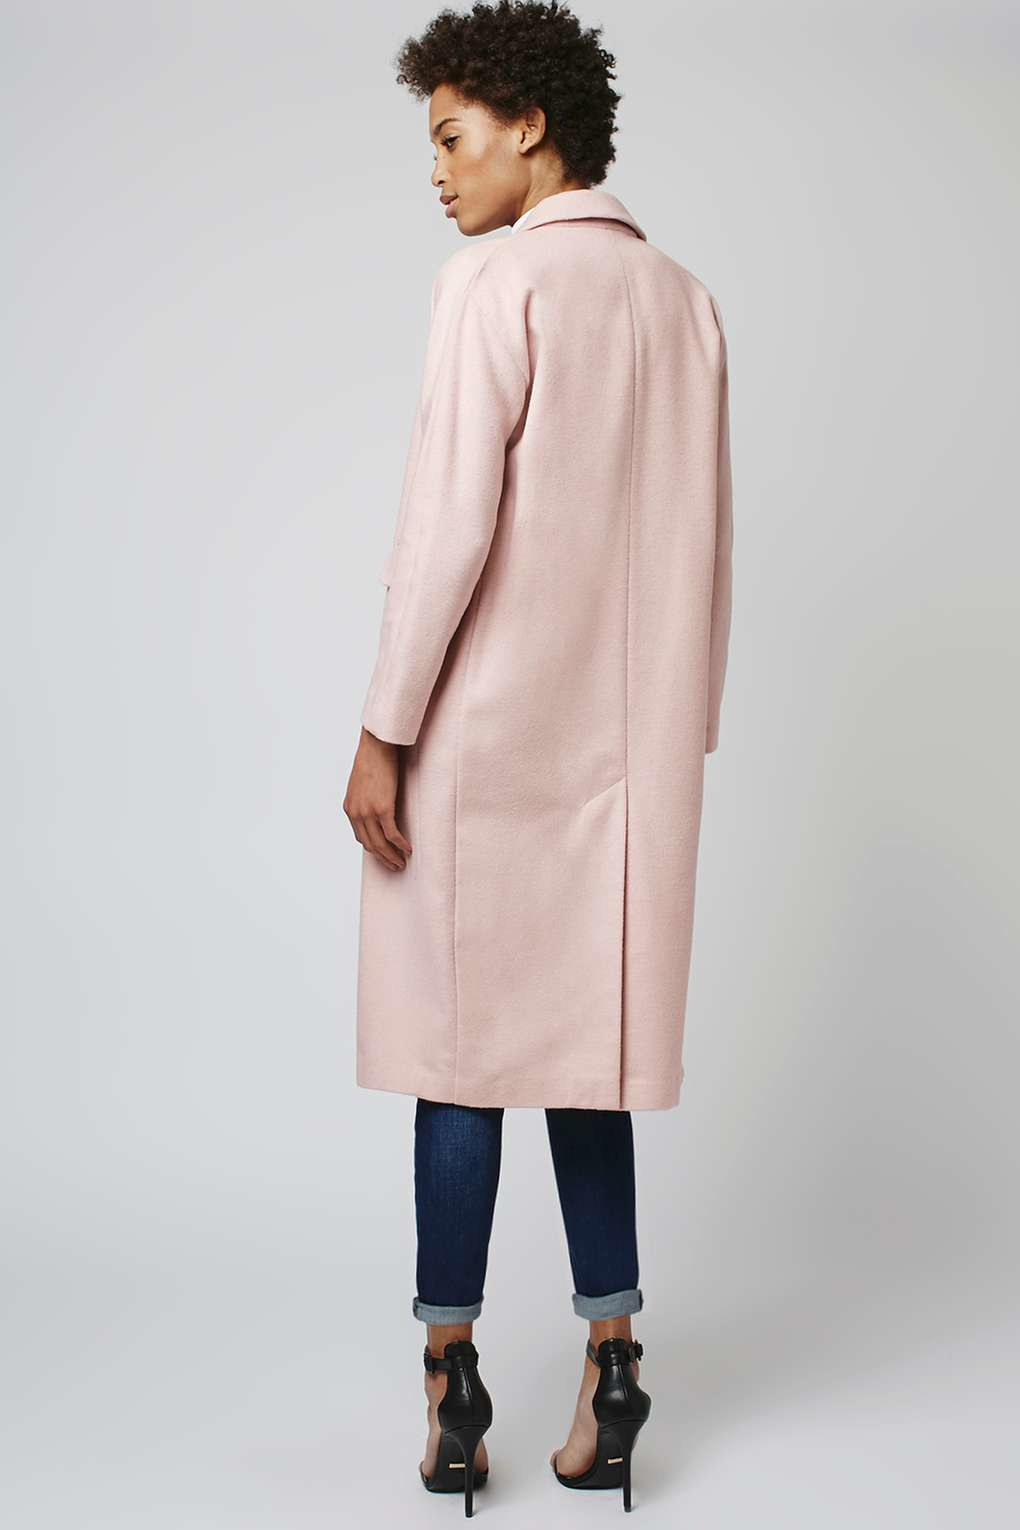 Topshop Longline Slouch Fit Coat in Pink | Lyst